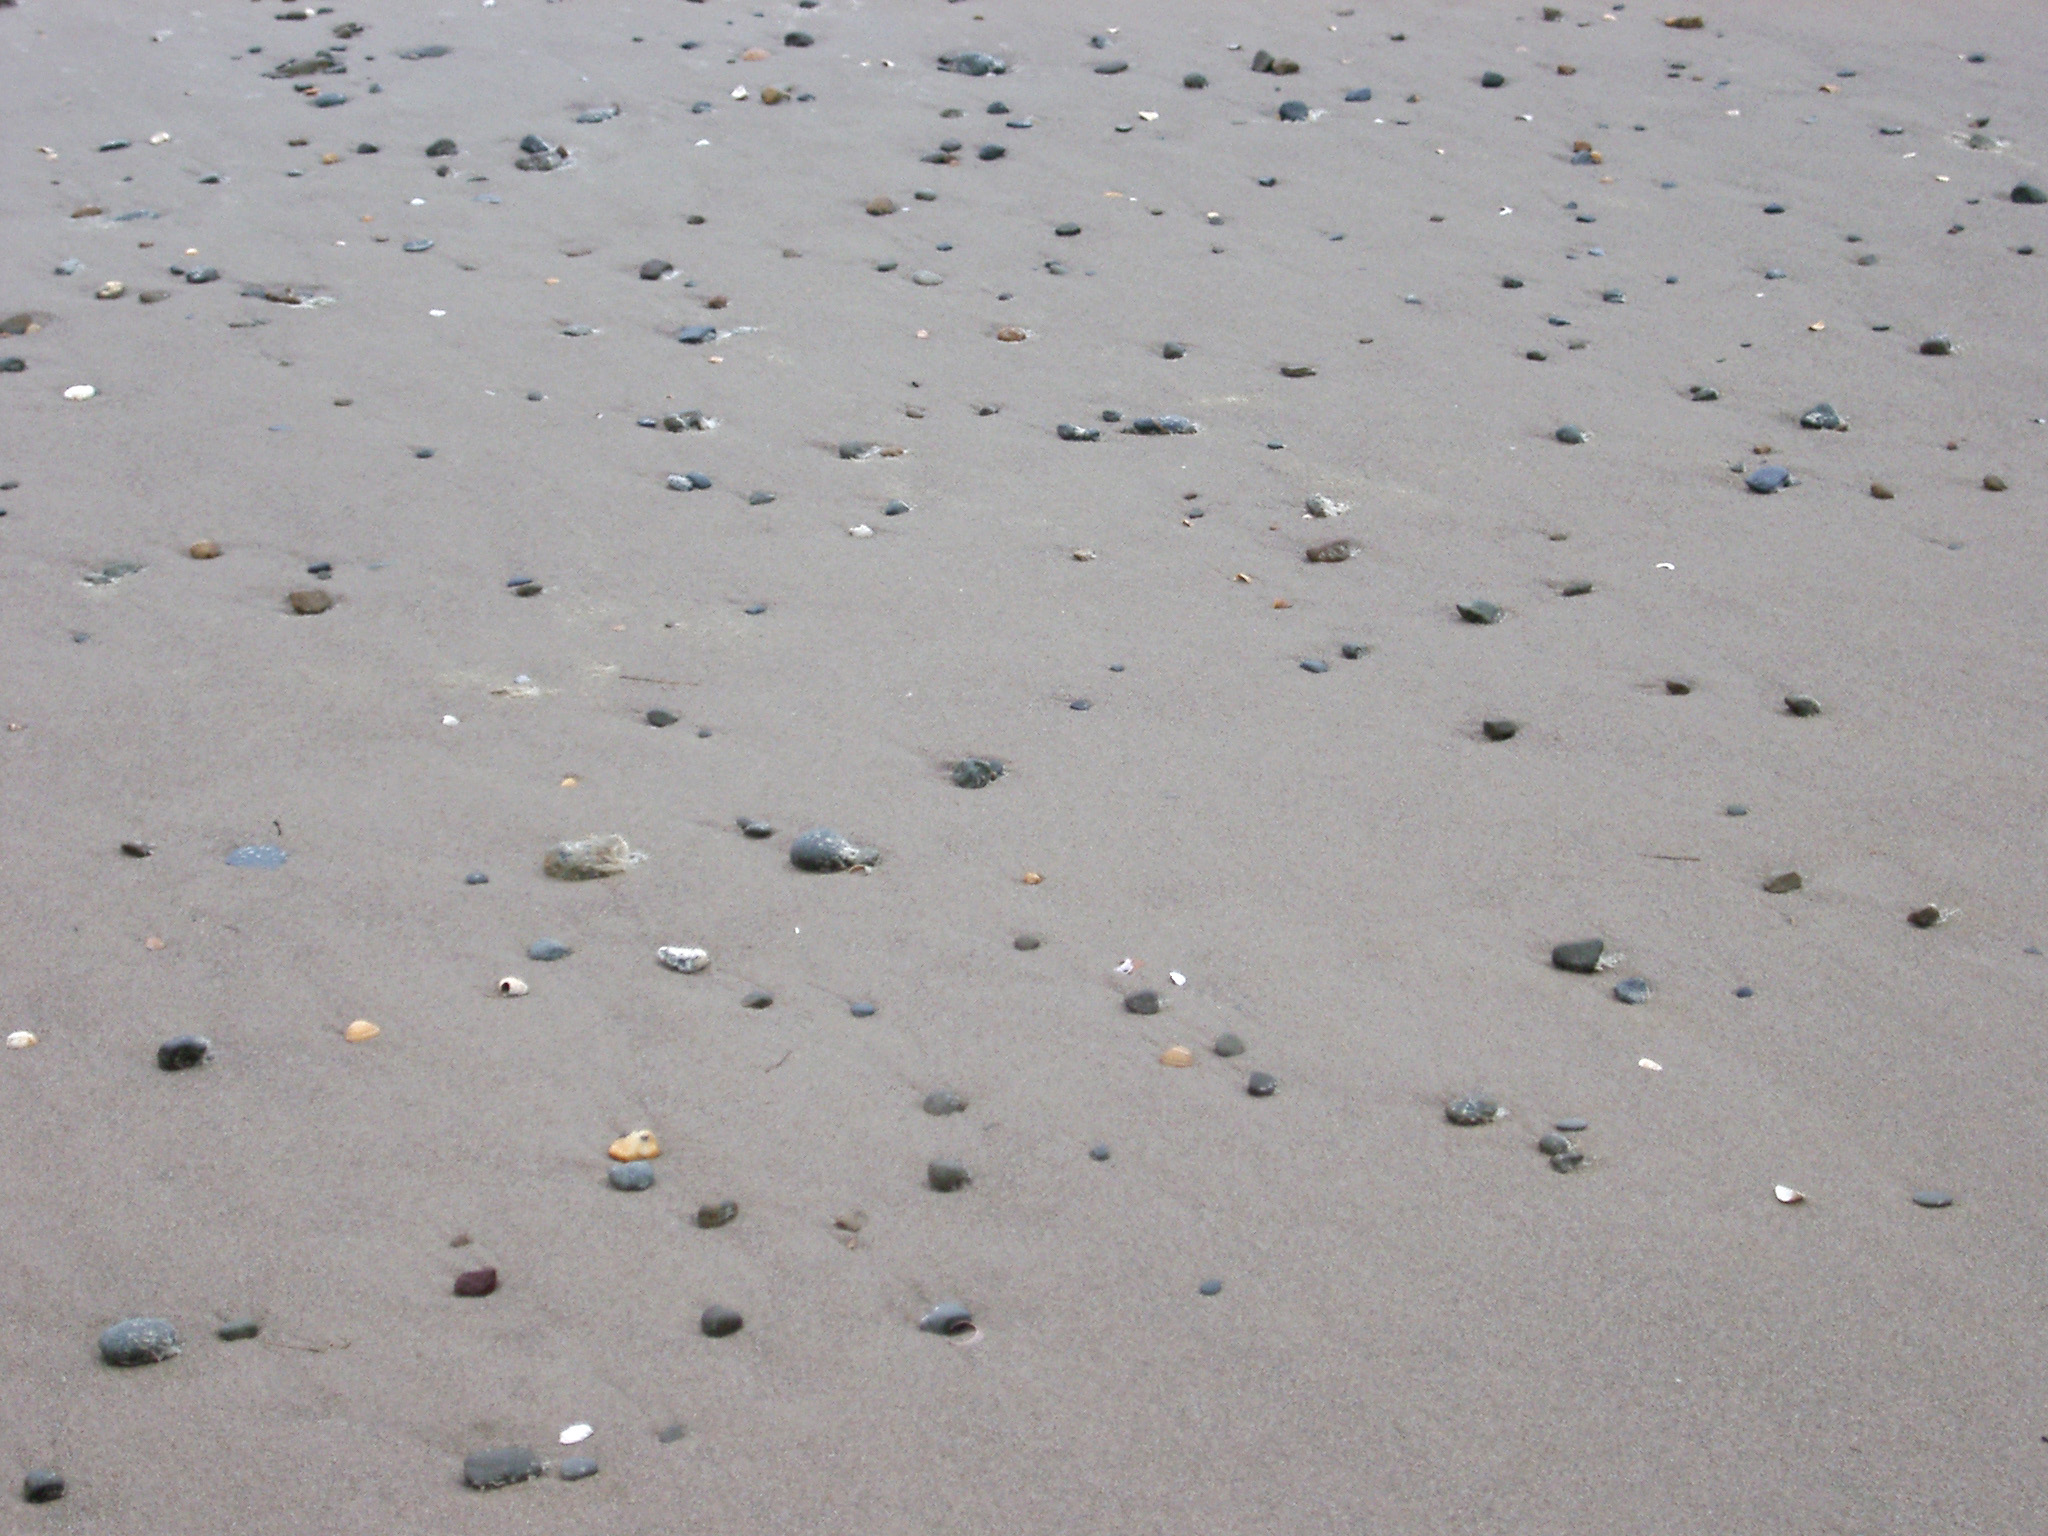 Background of shells lying on wet beach sand left stranded by the receding tide